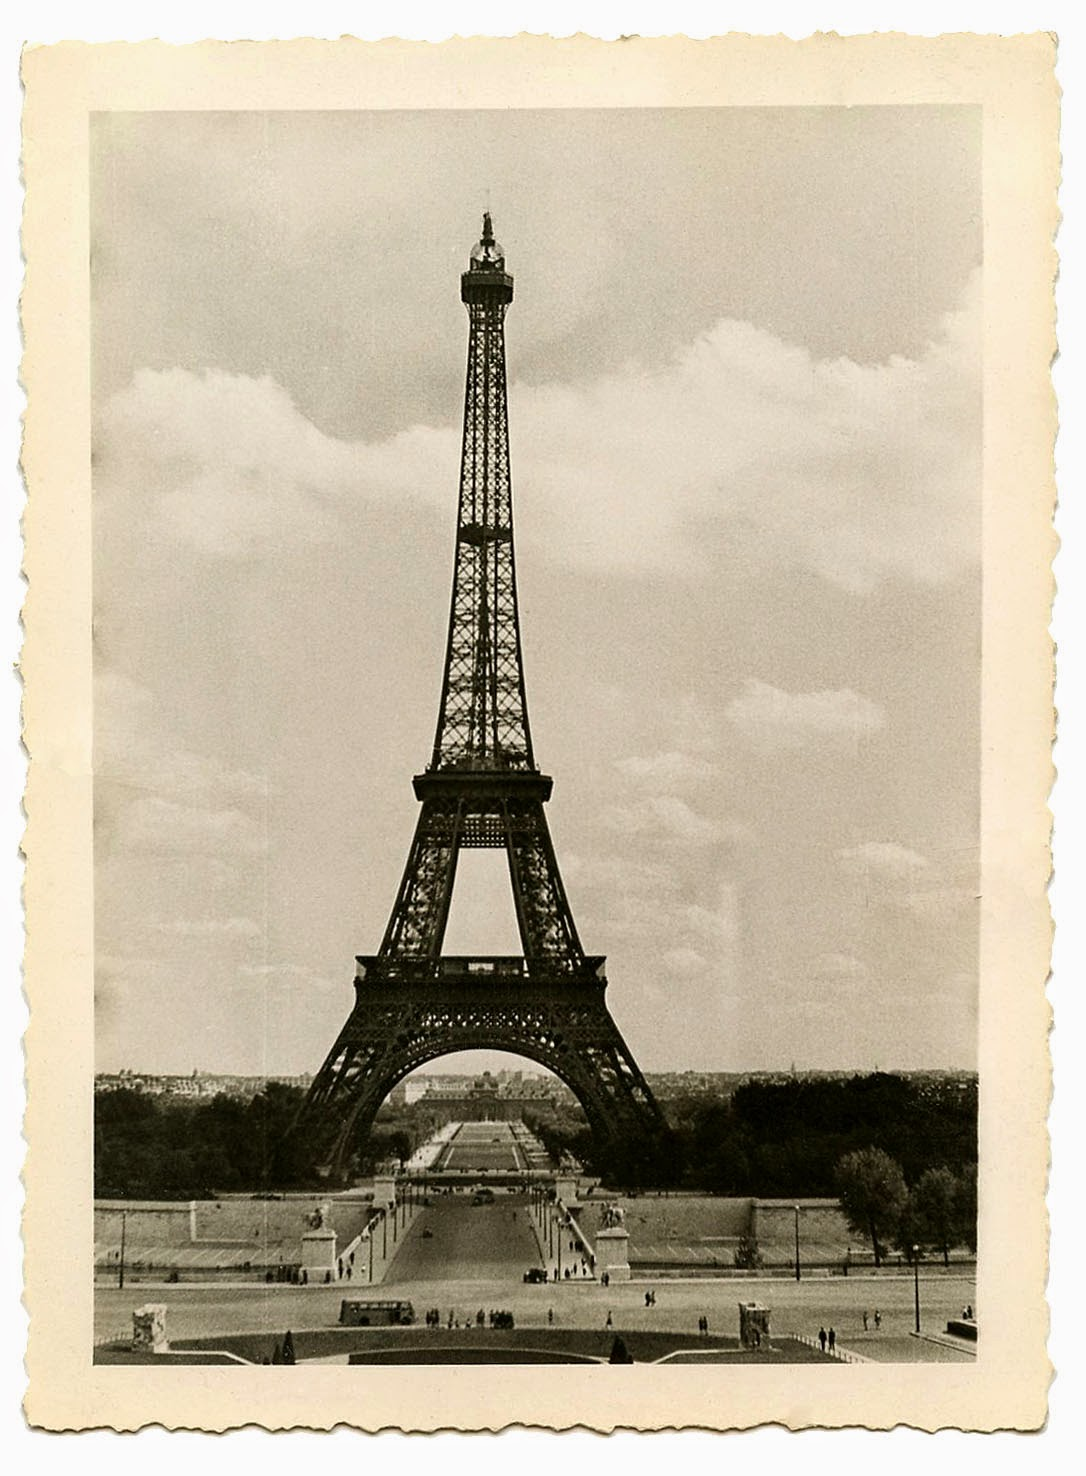 Vintage image of Eiffel Tower in Paris France